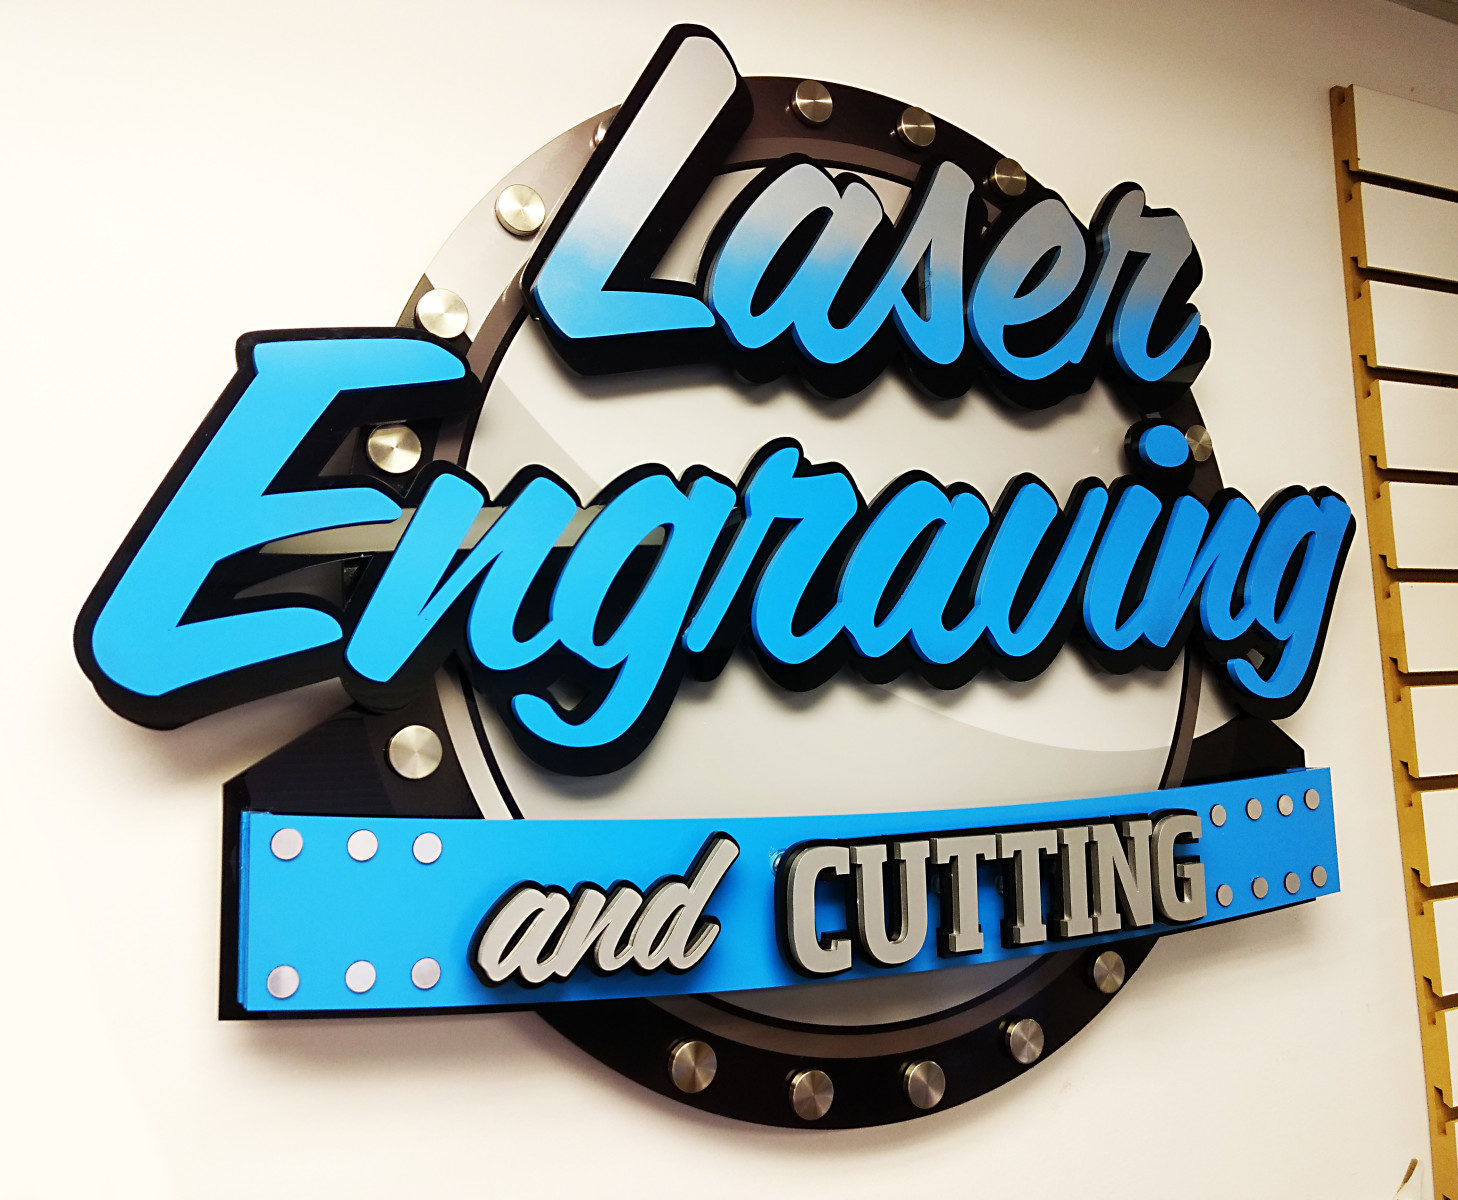 3 Dimensional Laser cut Letters and Logos, Carved Wood Signs